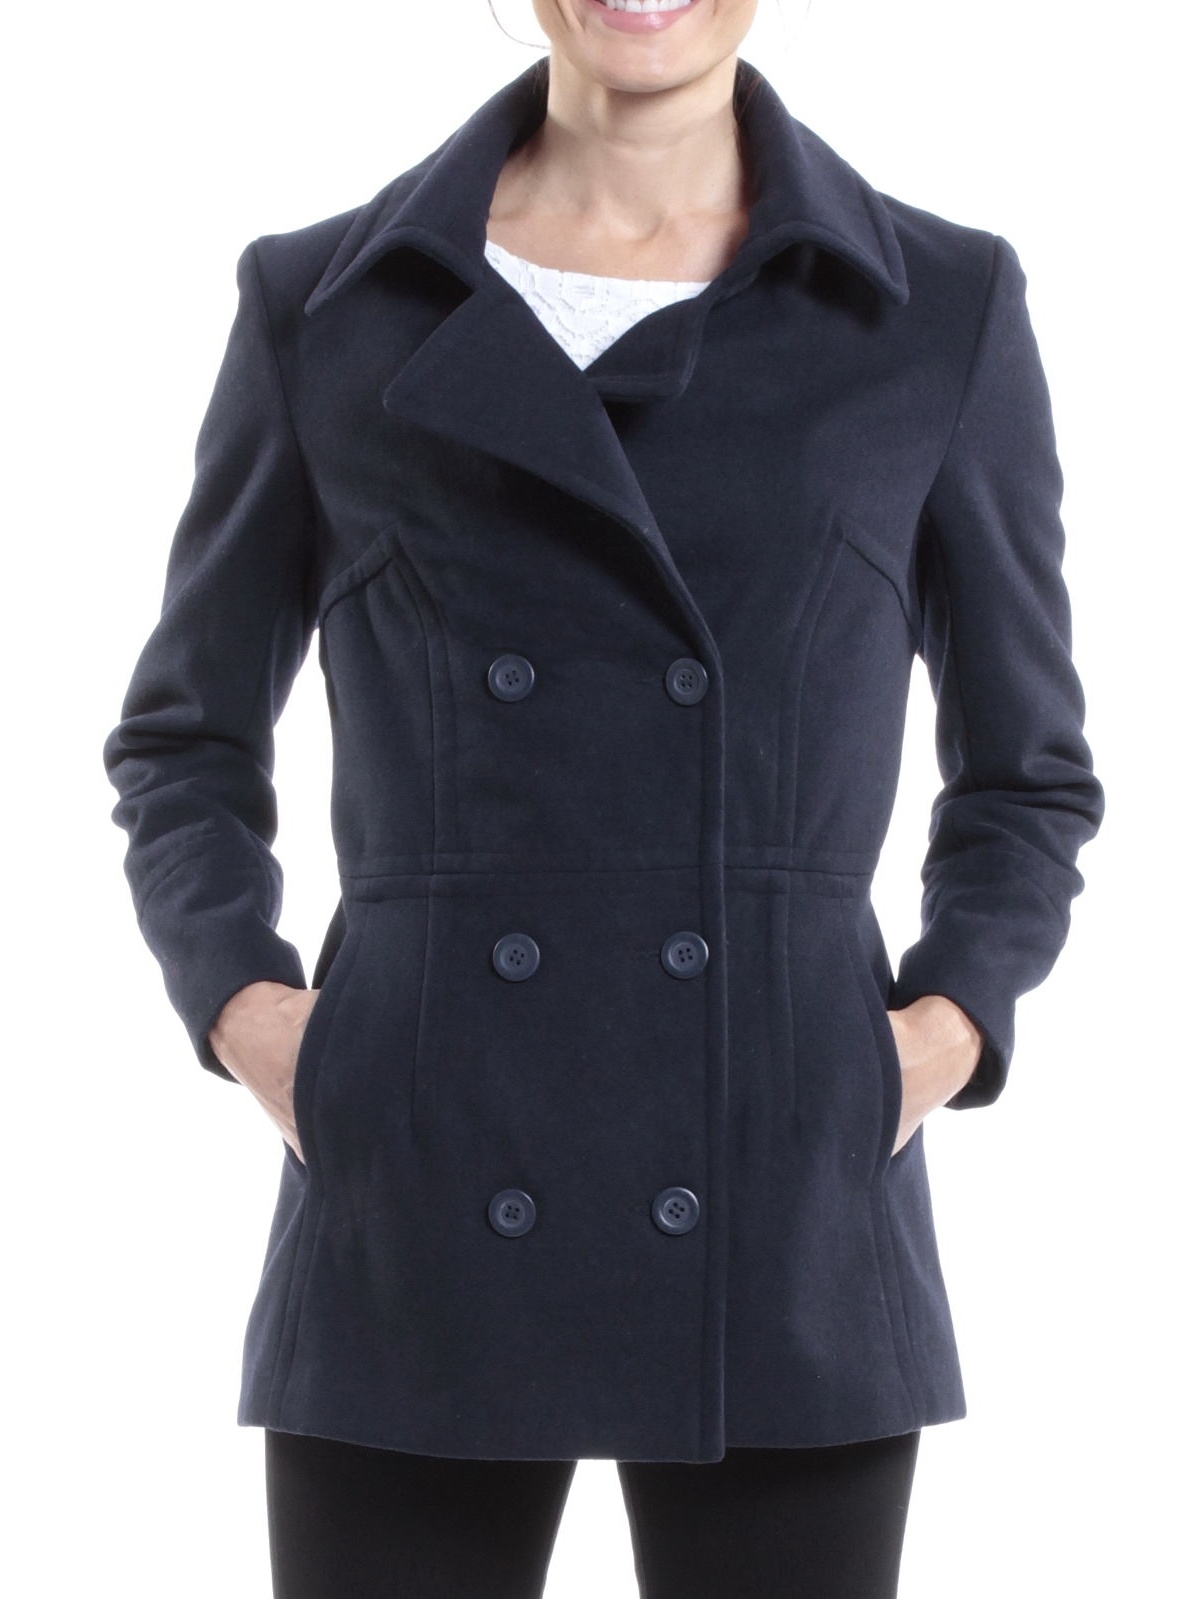 Alpine Swiss Emma Womens Peacoat Double Breasted Overcoat 3 4 Length Wool Blazer Black... by Womens Wool Coats